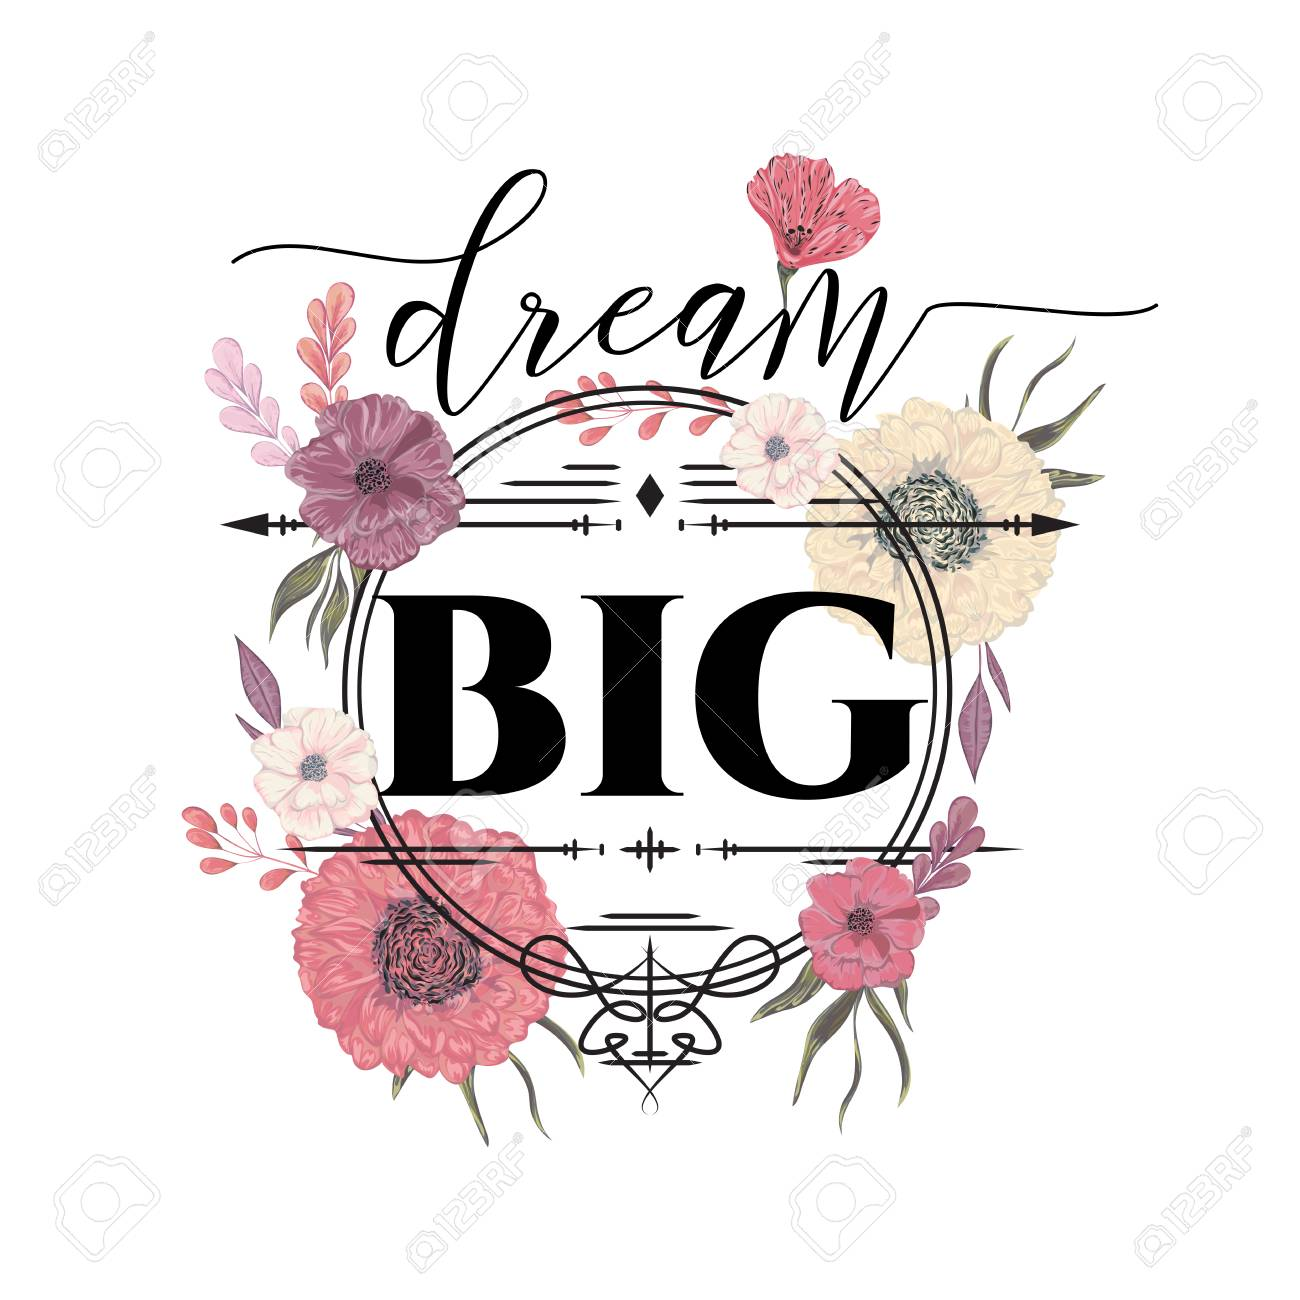 Creative Typography Poster With Flowers In Watercolor Style Inspirational Quote Big Dream Concept